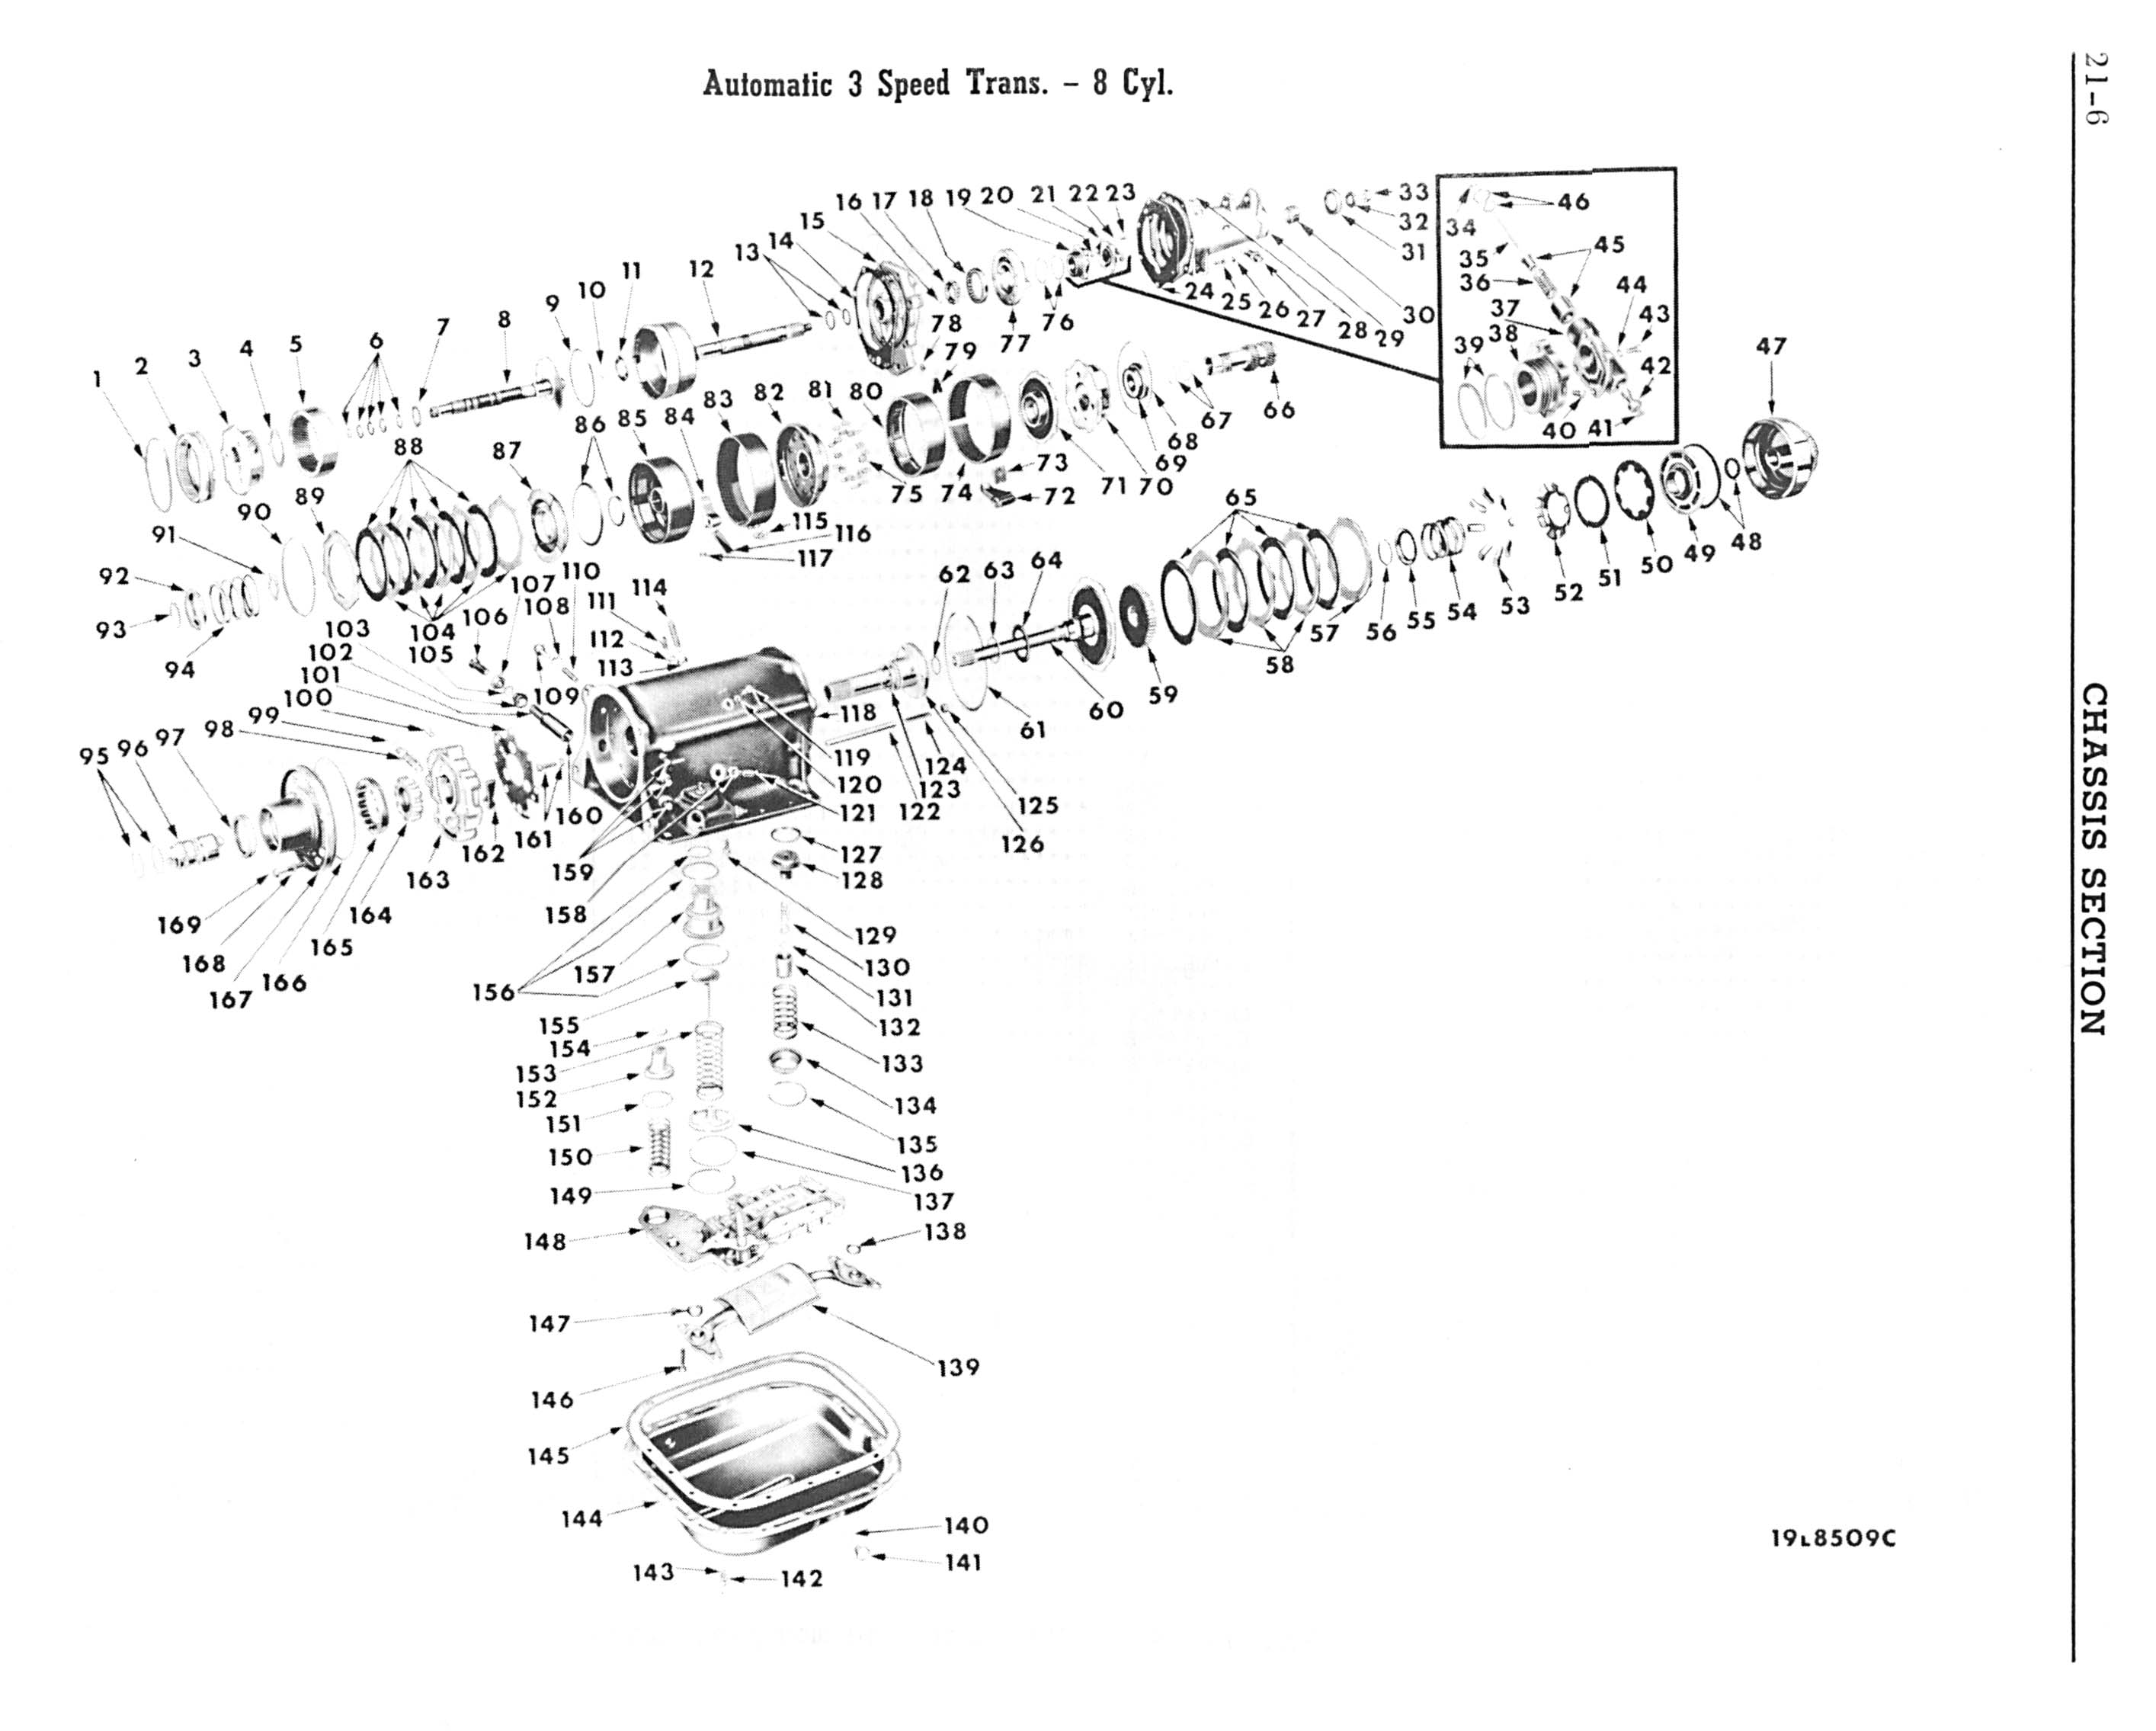 Https 2013 02 26 Troubleshooting Trees 1981 Club Car Ds Wiring Diagram Torque Flite Transmission Exploded View